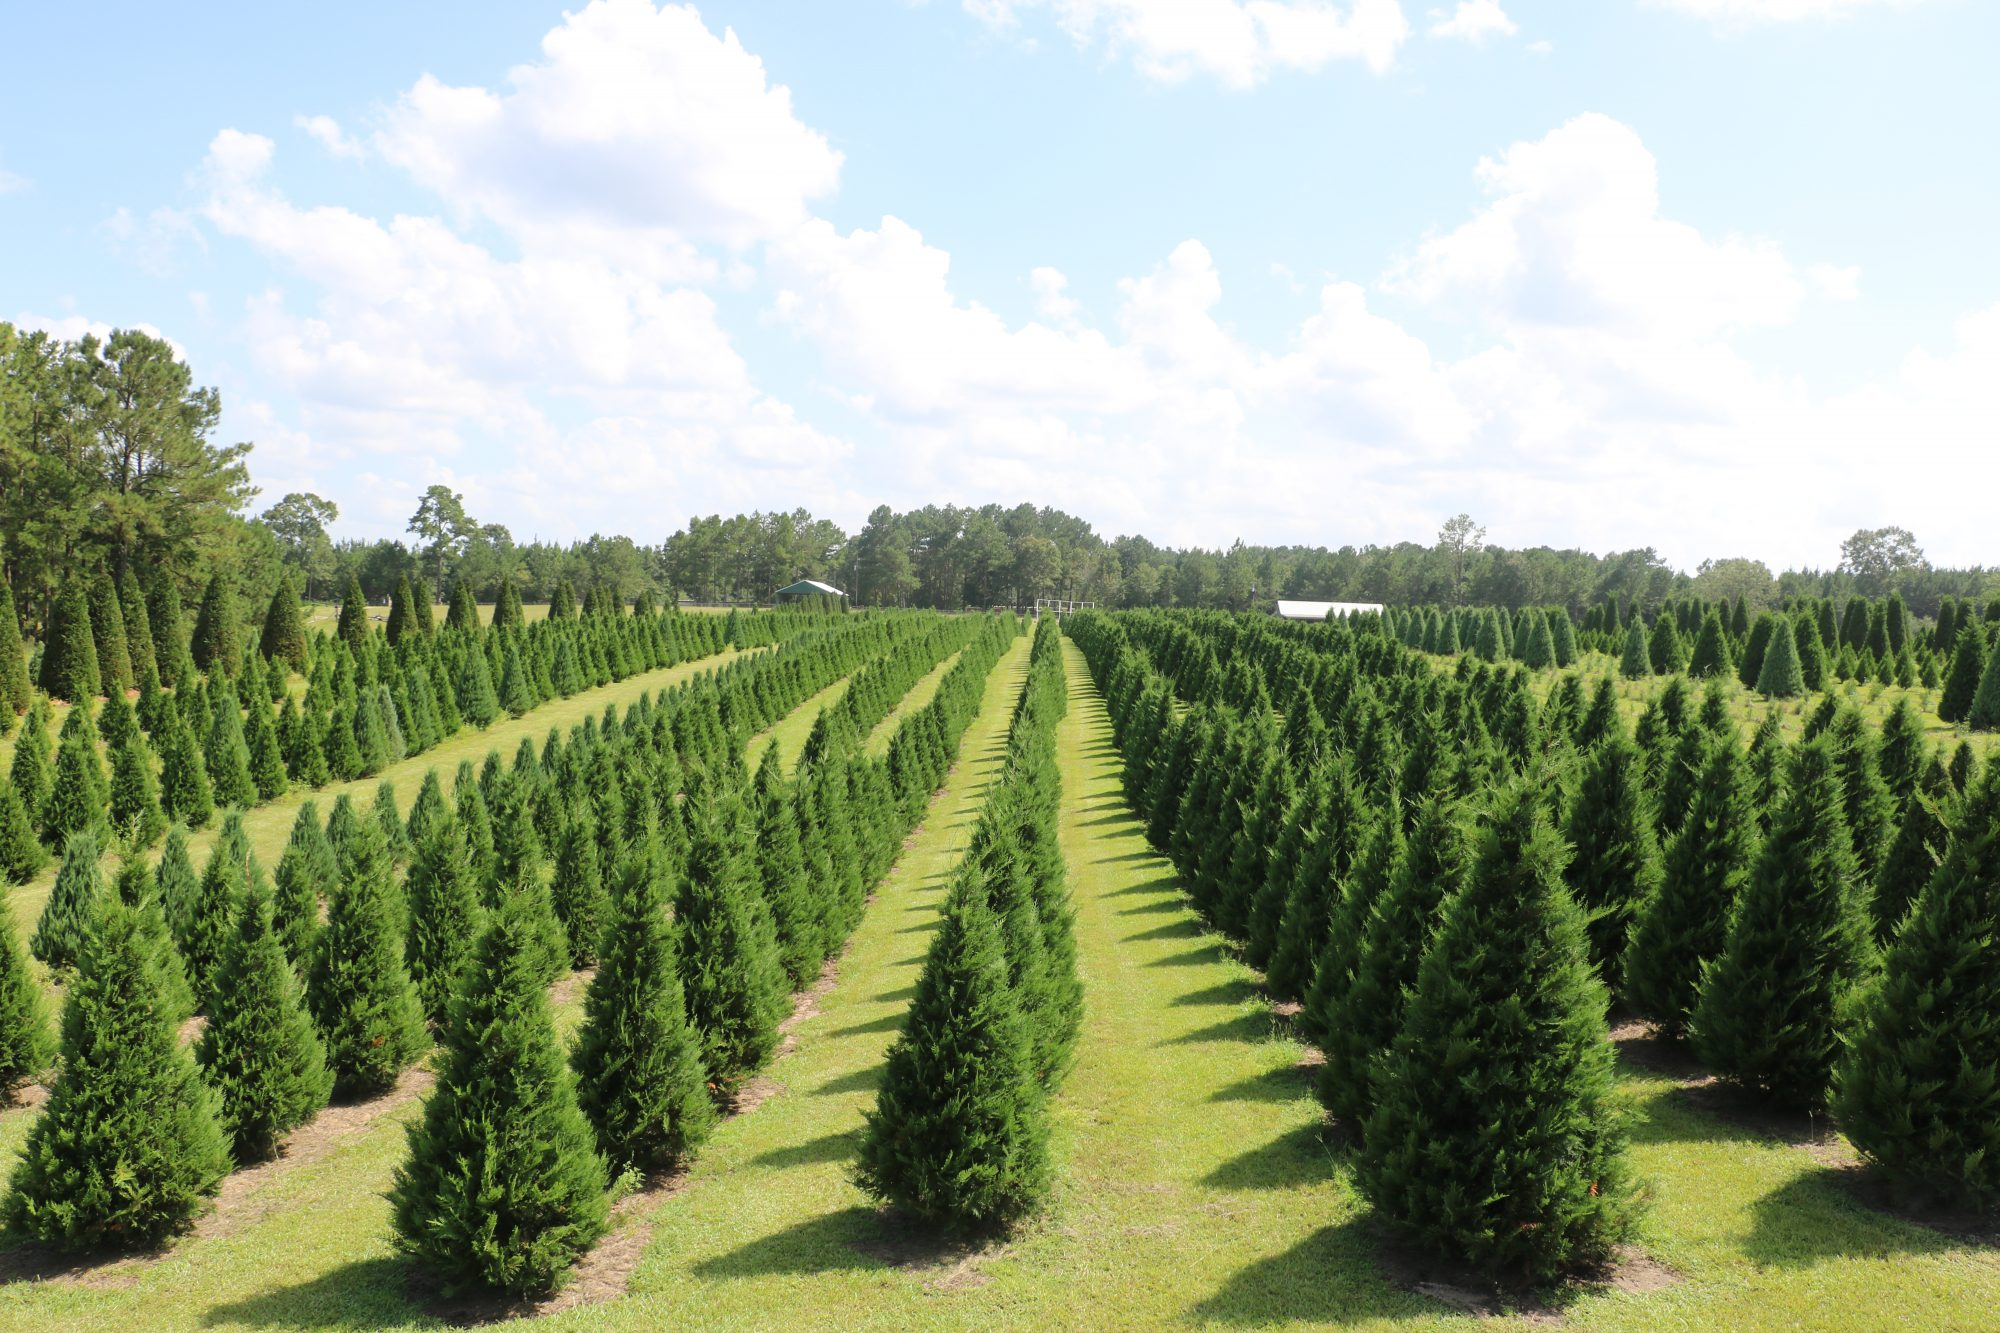 Steele's Christmas Tree Farm